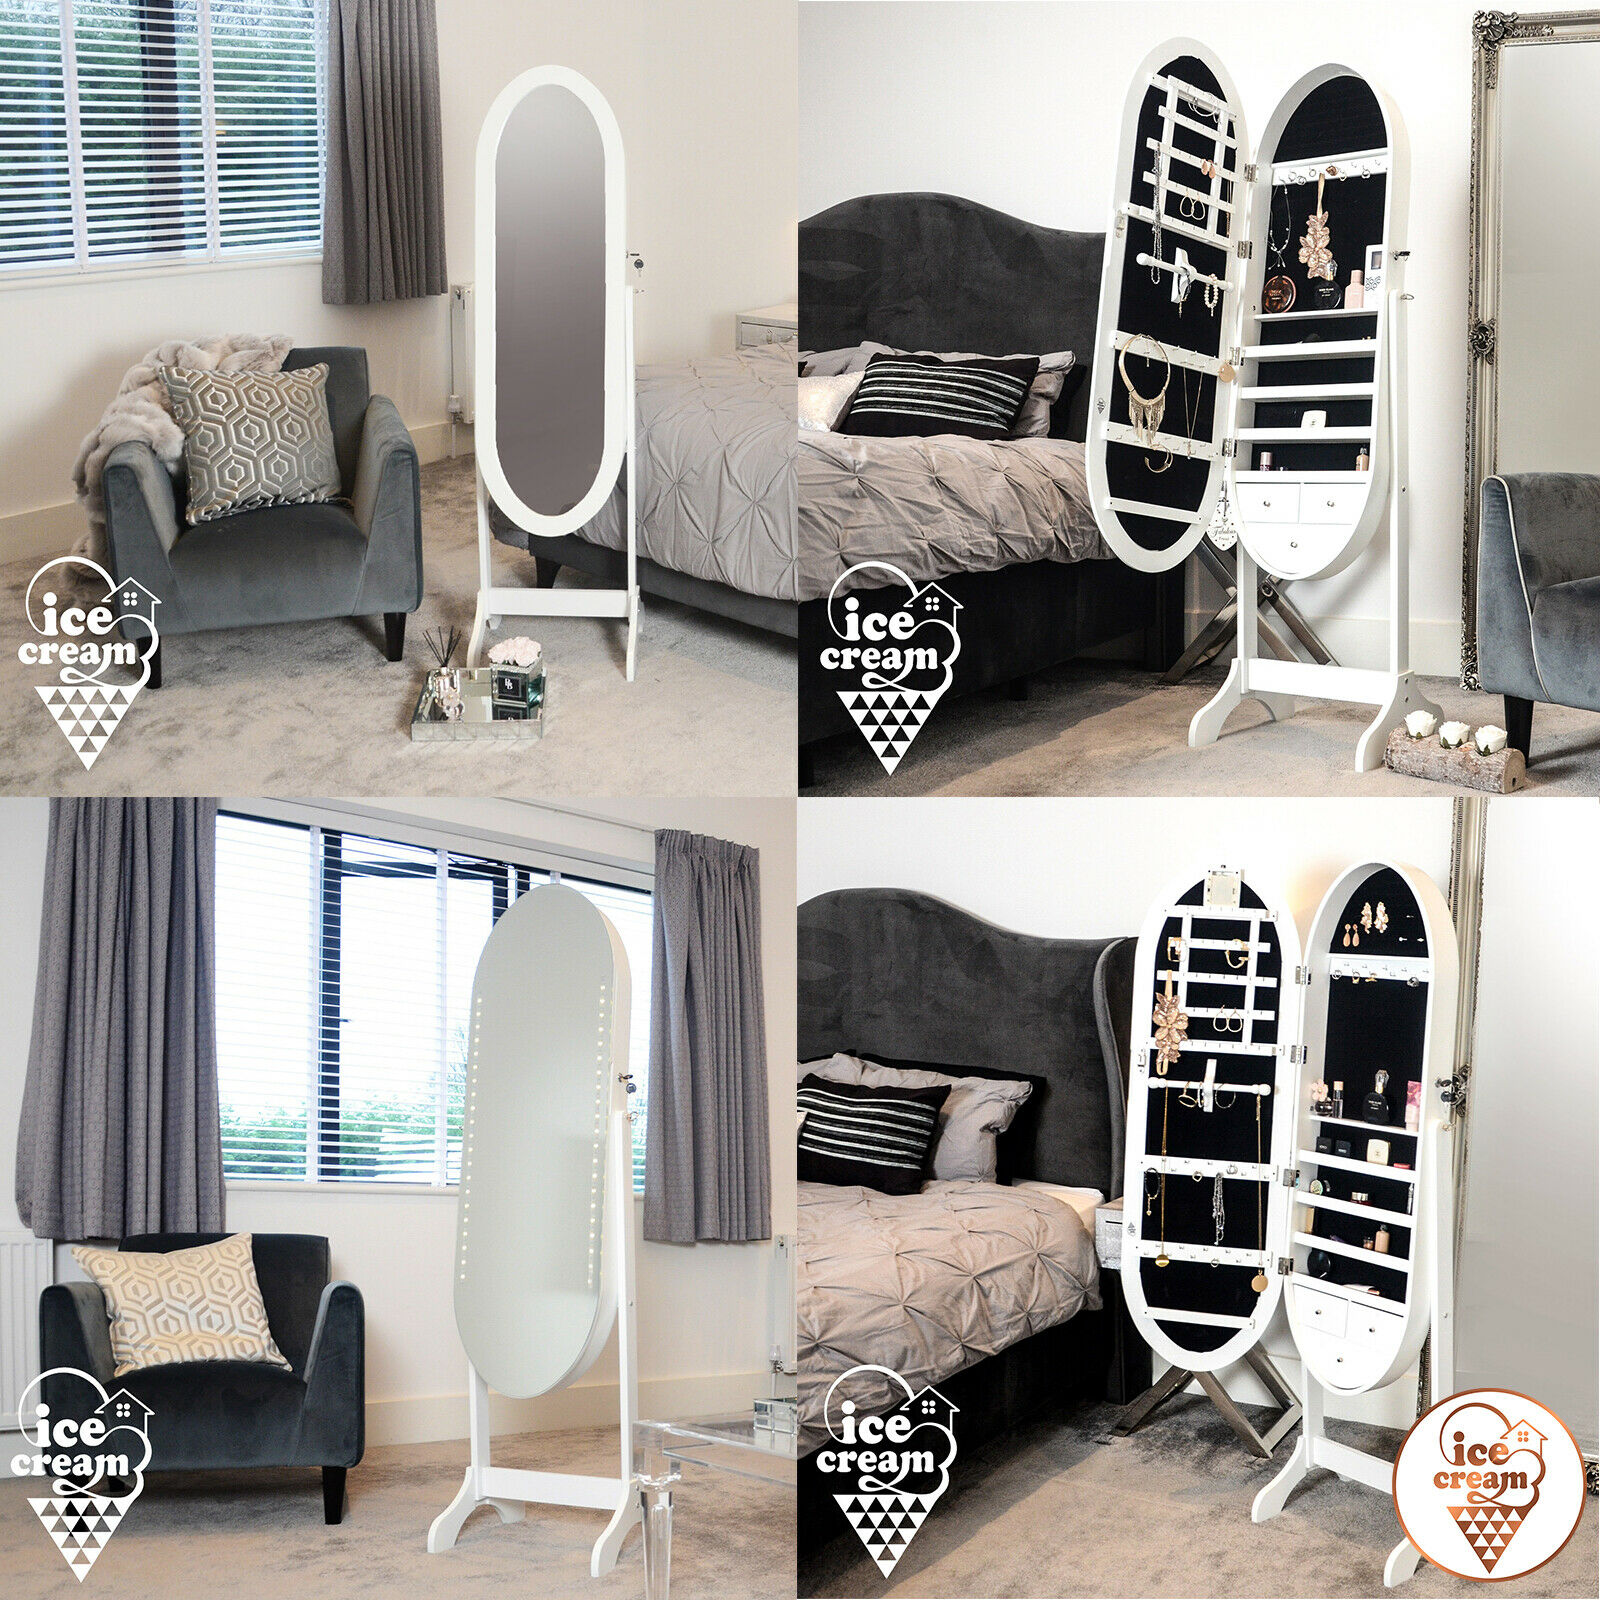 Standing Oval Mirror Jewellery Storage Cabinet with Drawers LED Lights Makeup